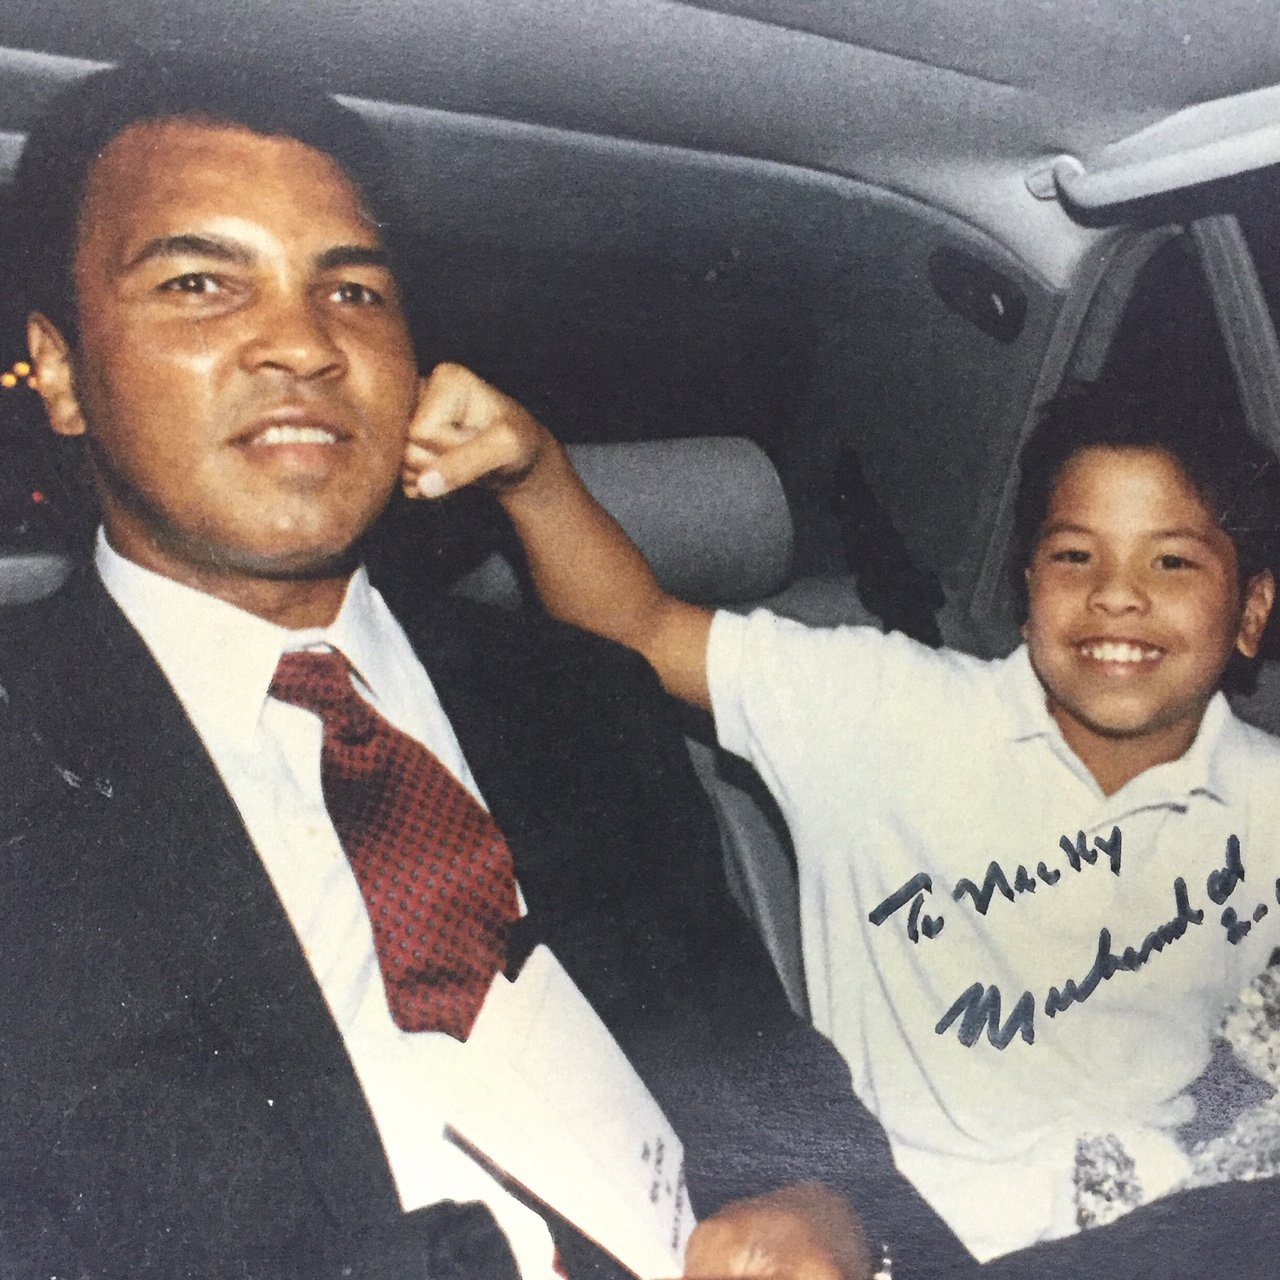 Nick Kwan and Muhammad Ali